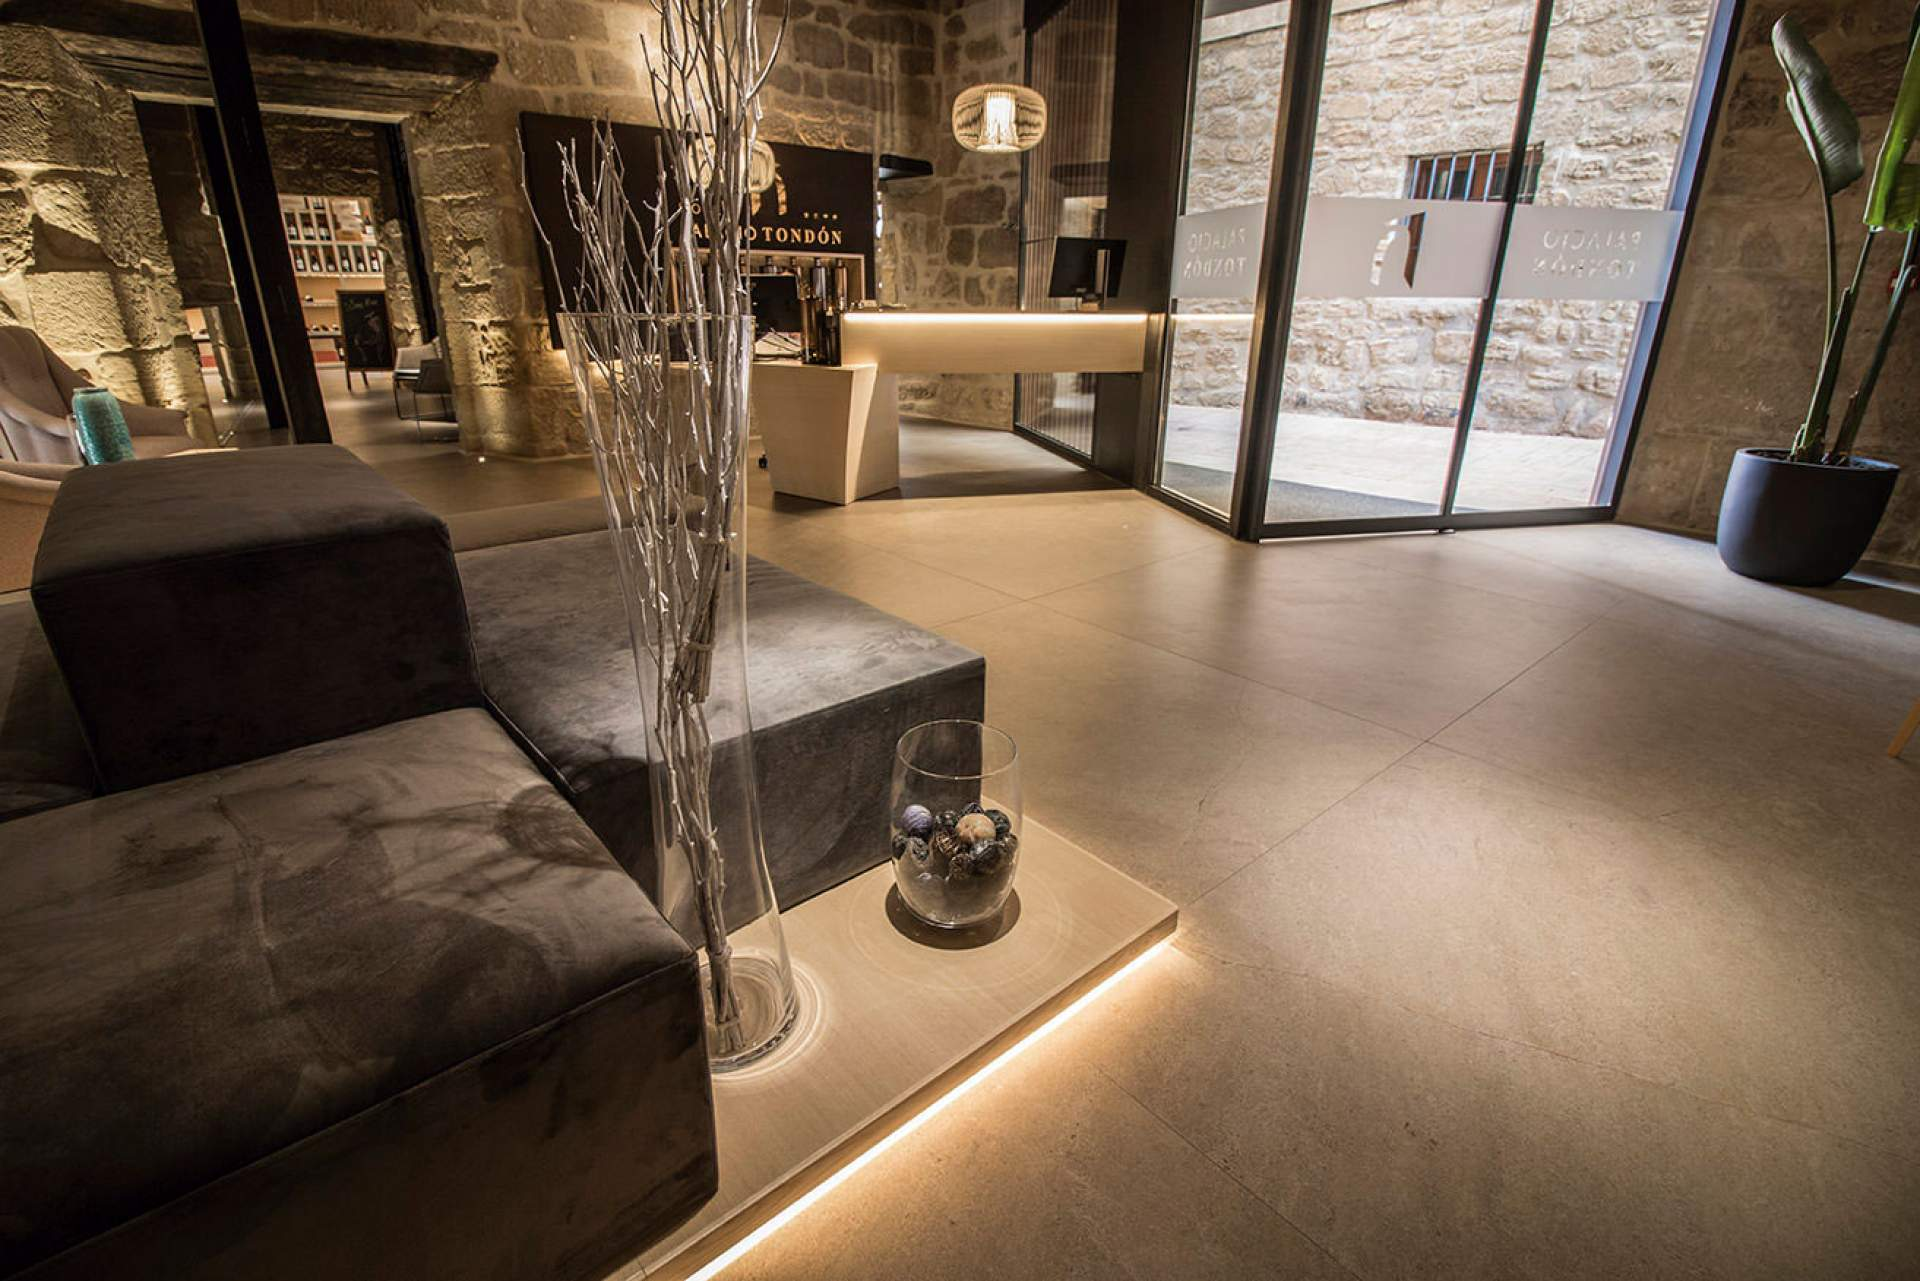 Evoke Reception setting with Moka Tile